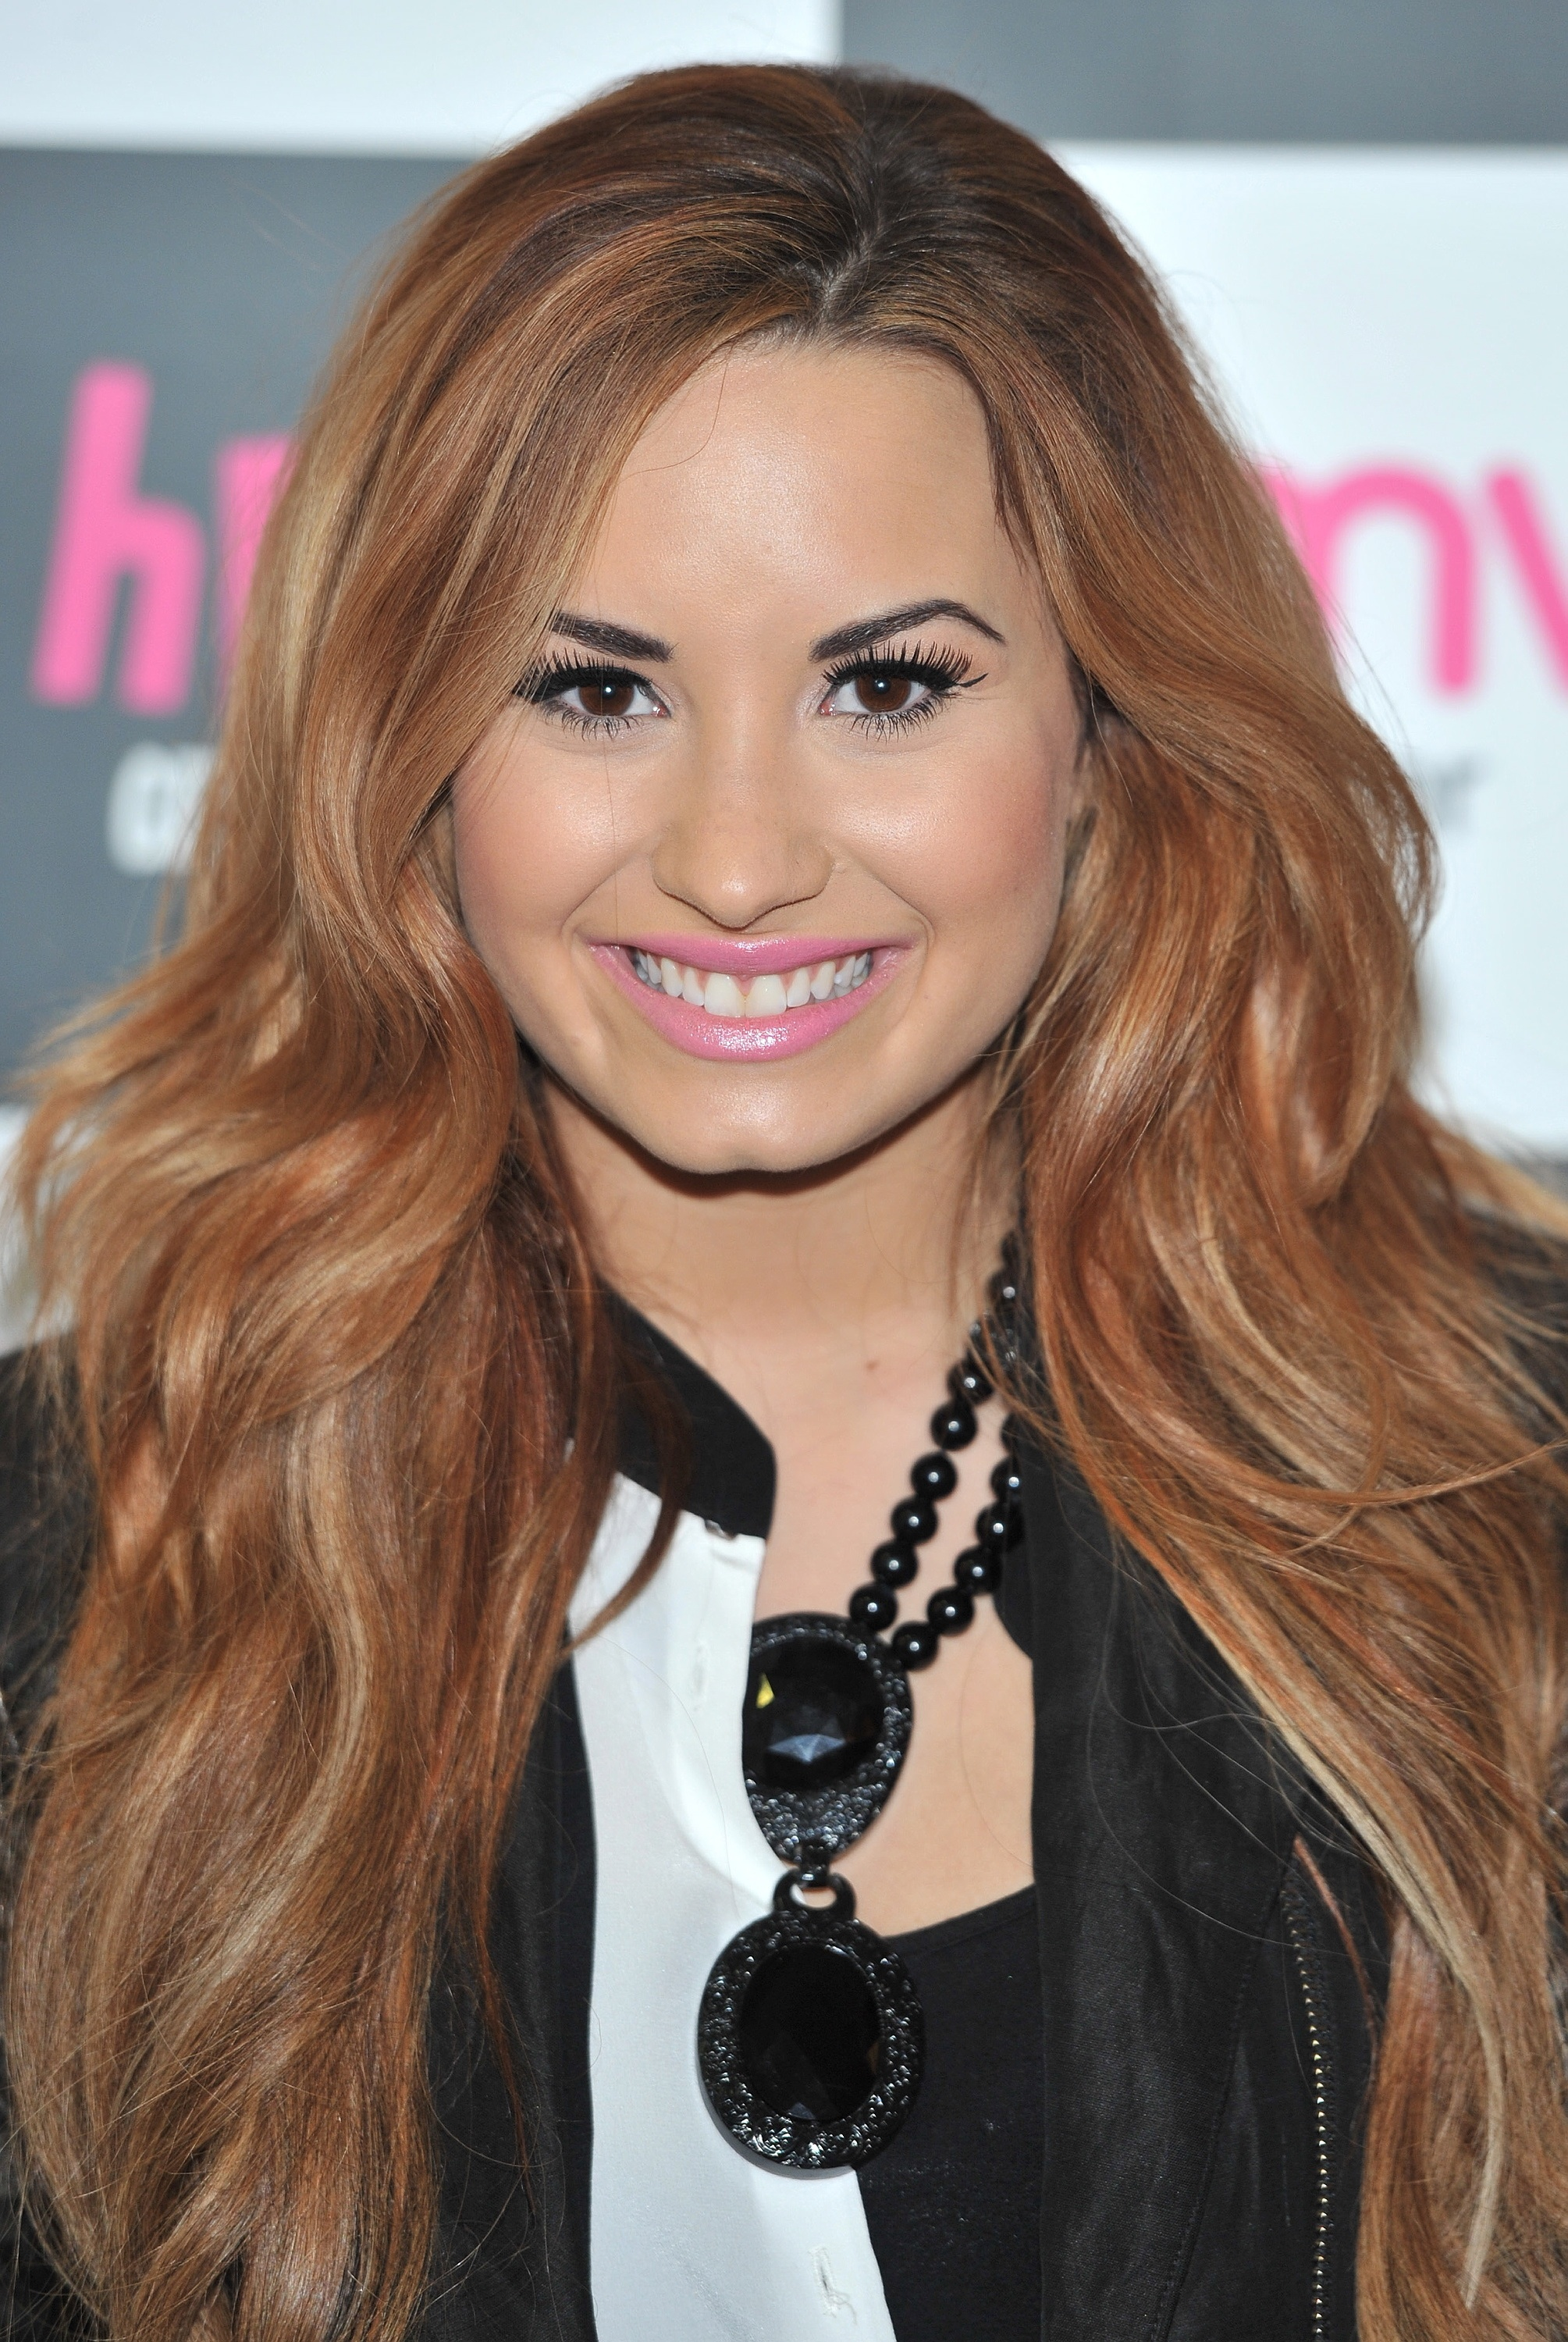 http://static1.wikia.nocookie.net/__cb20130710195043/gameshows/images/6/6d/Demi-lovato-x-factor.jpg